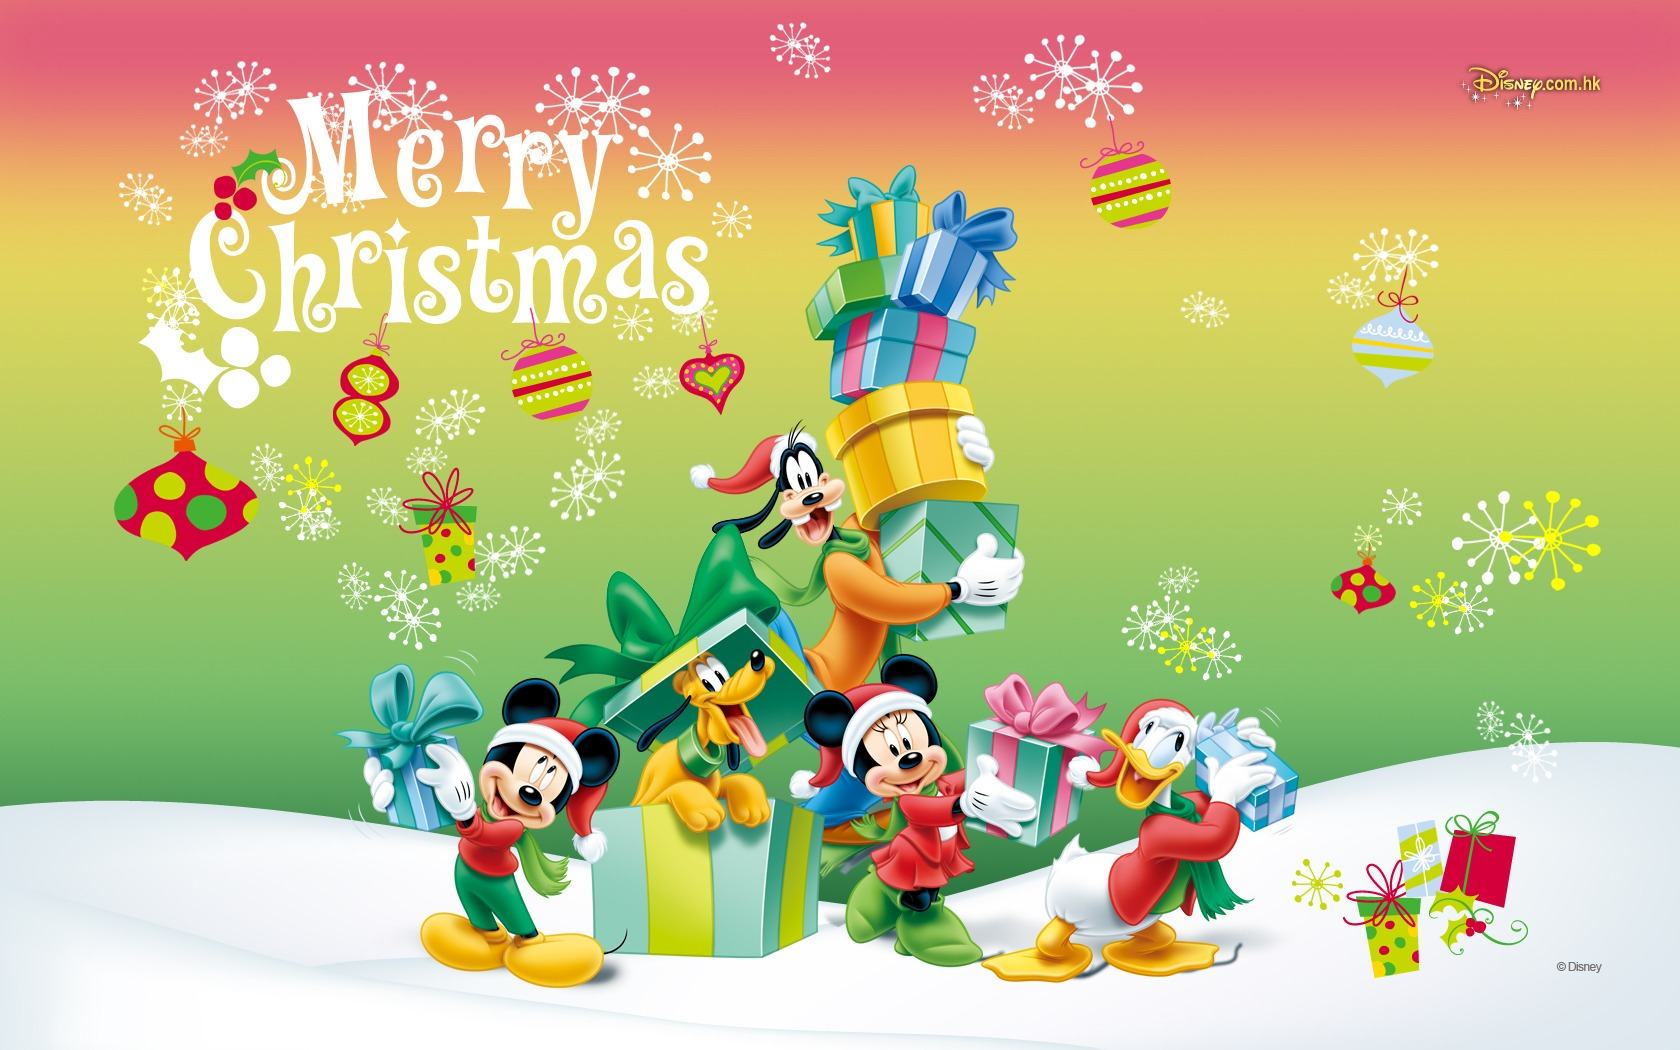 1000+ Images About Disney Christmas On Pinterest